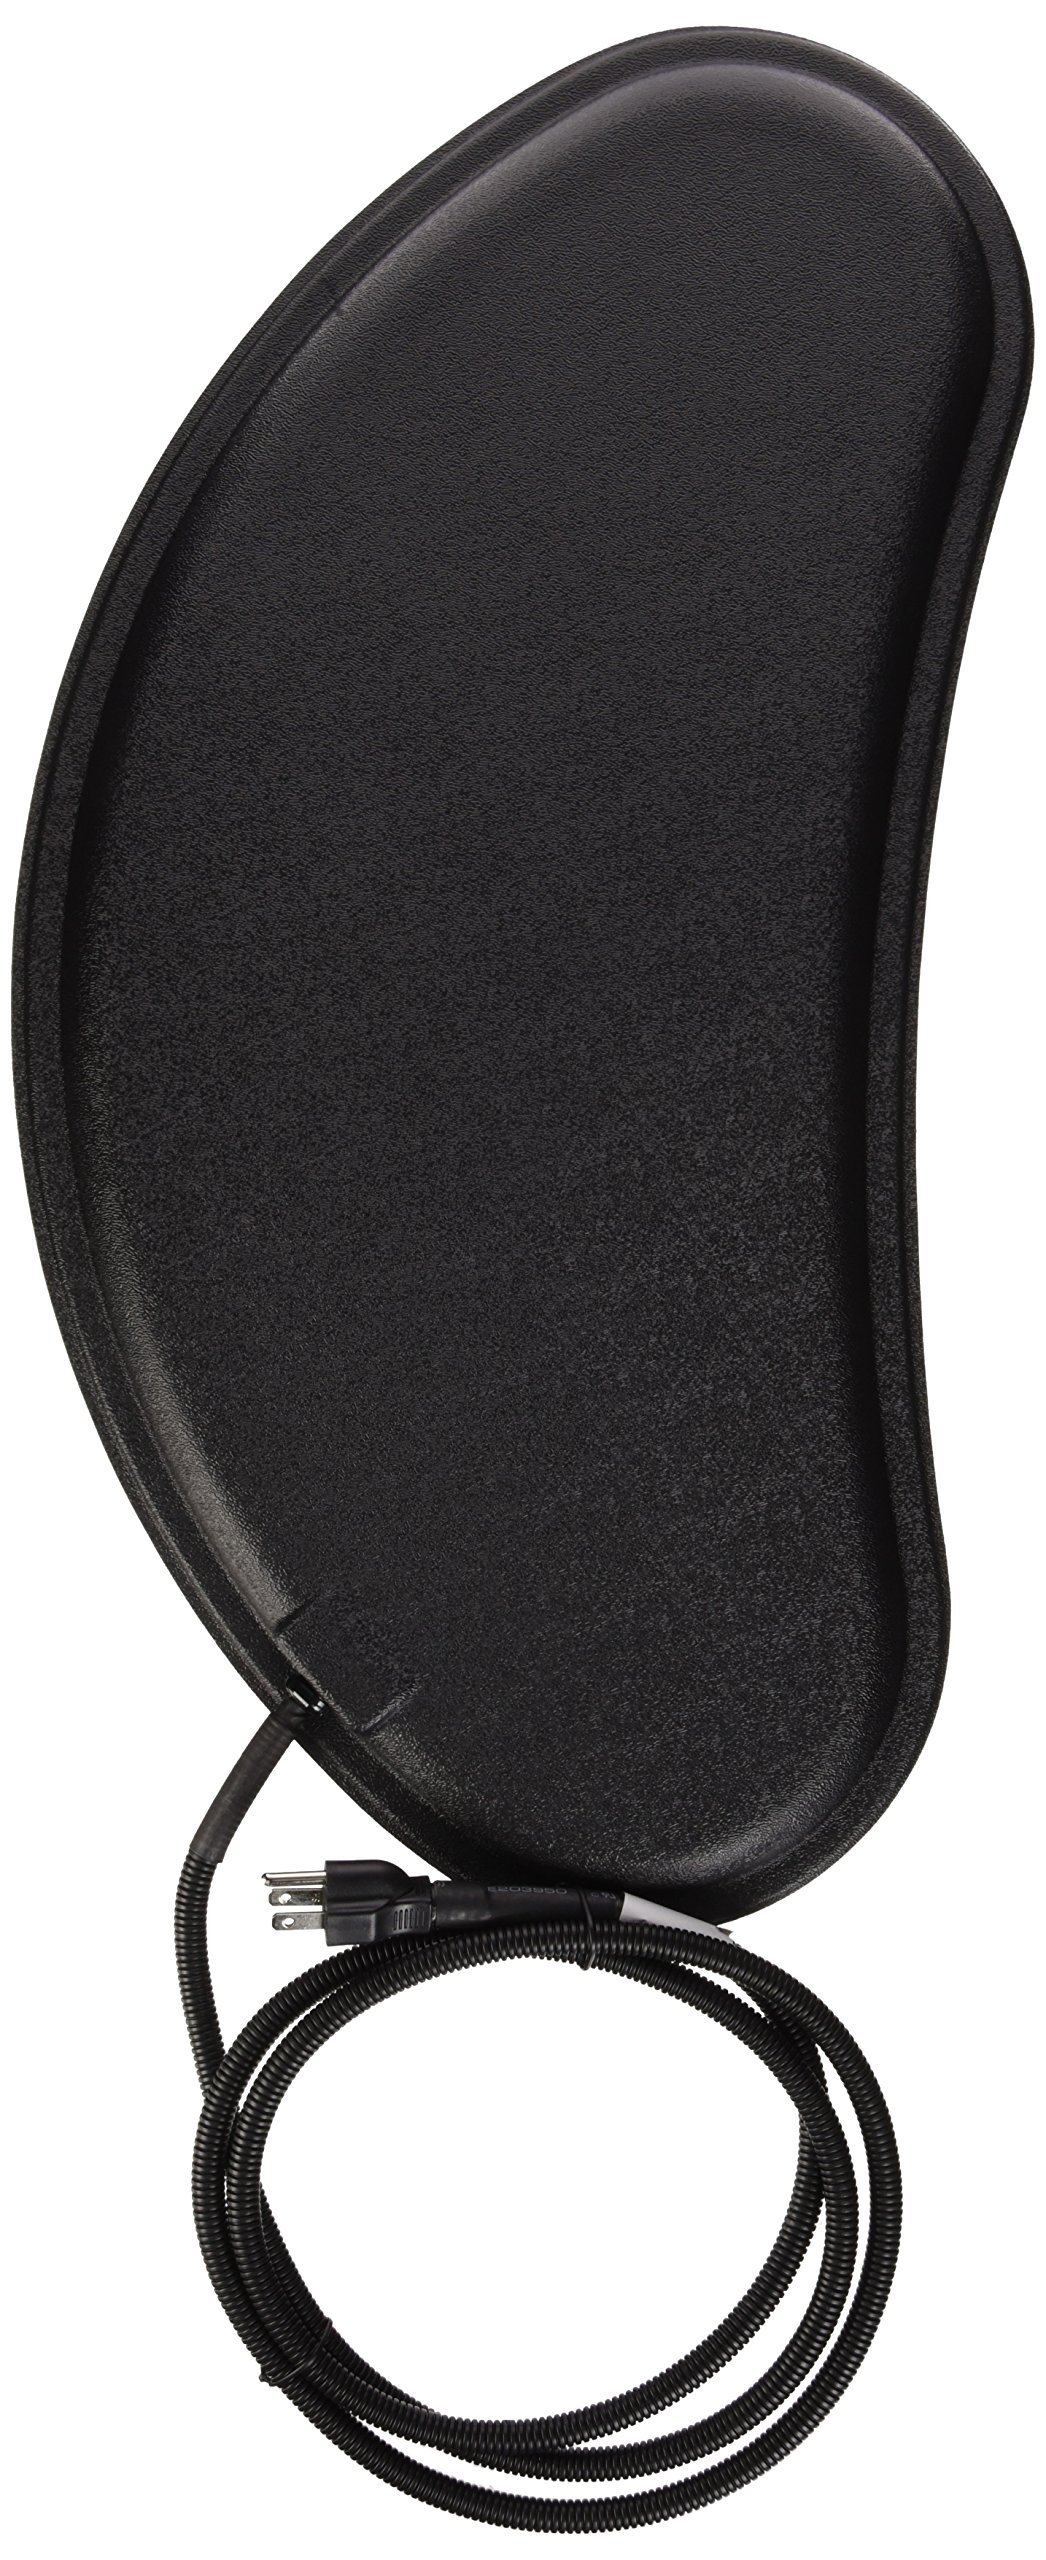 Petmate Outdoor Heating Element, 25 inches, Black by Petmate